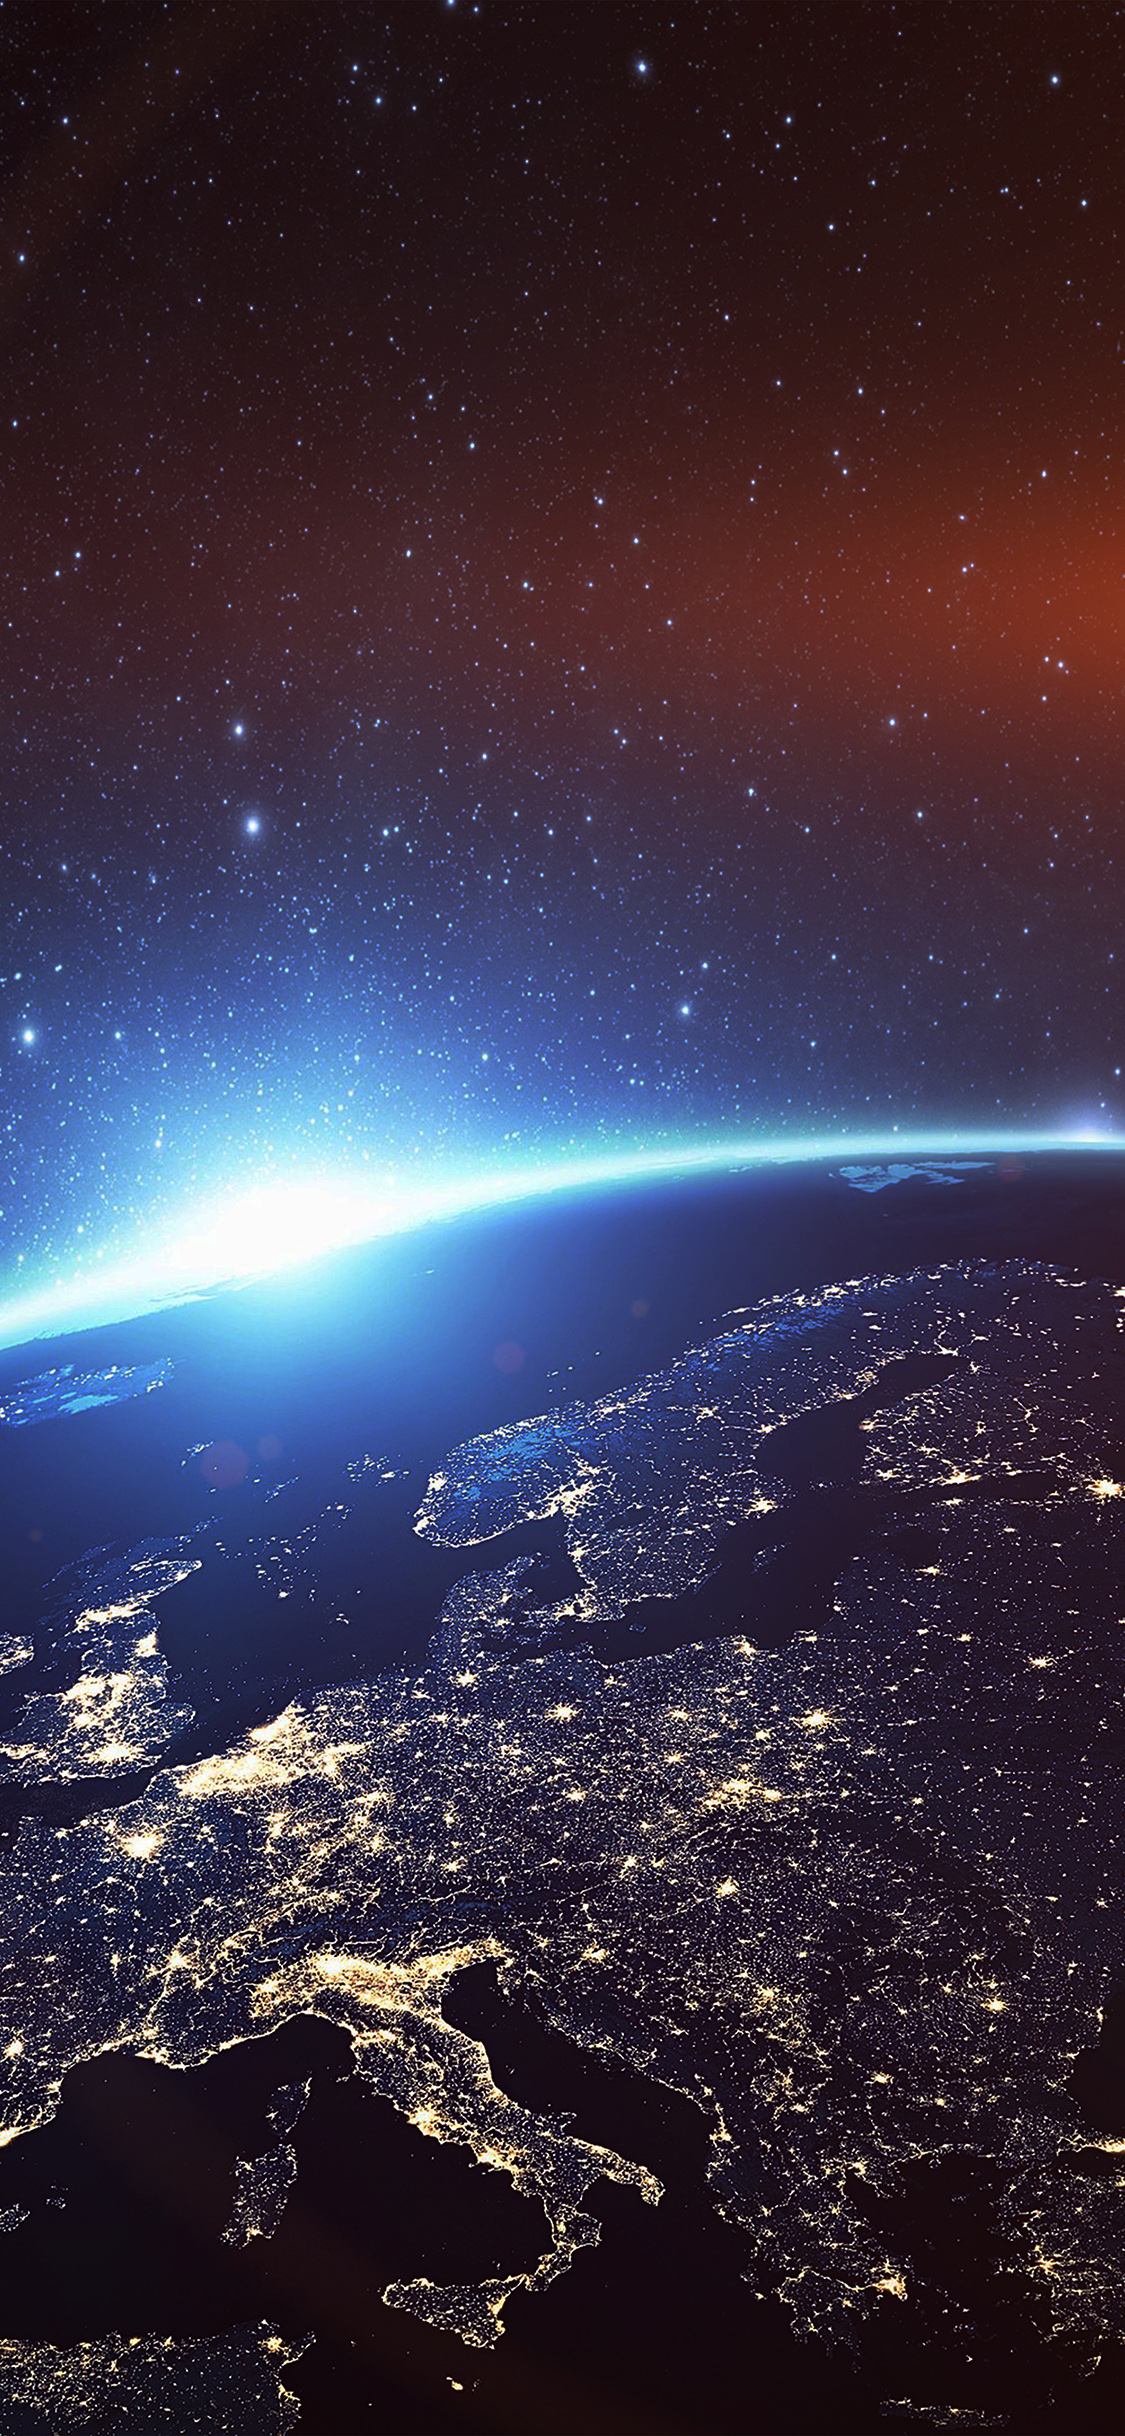 As25 Europe Earth Blue Space Night Art Illustration Flare